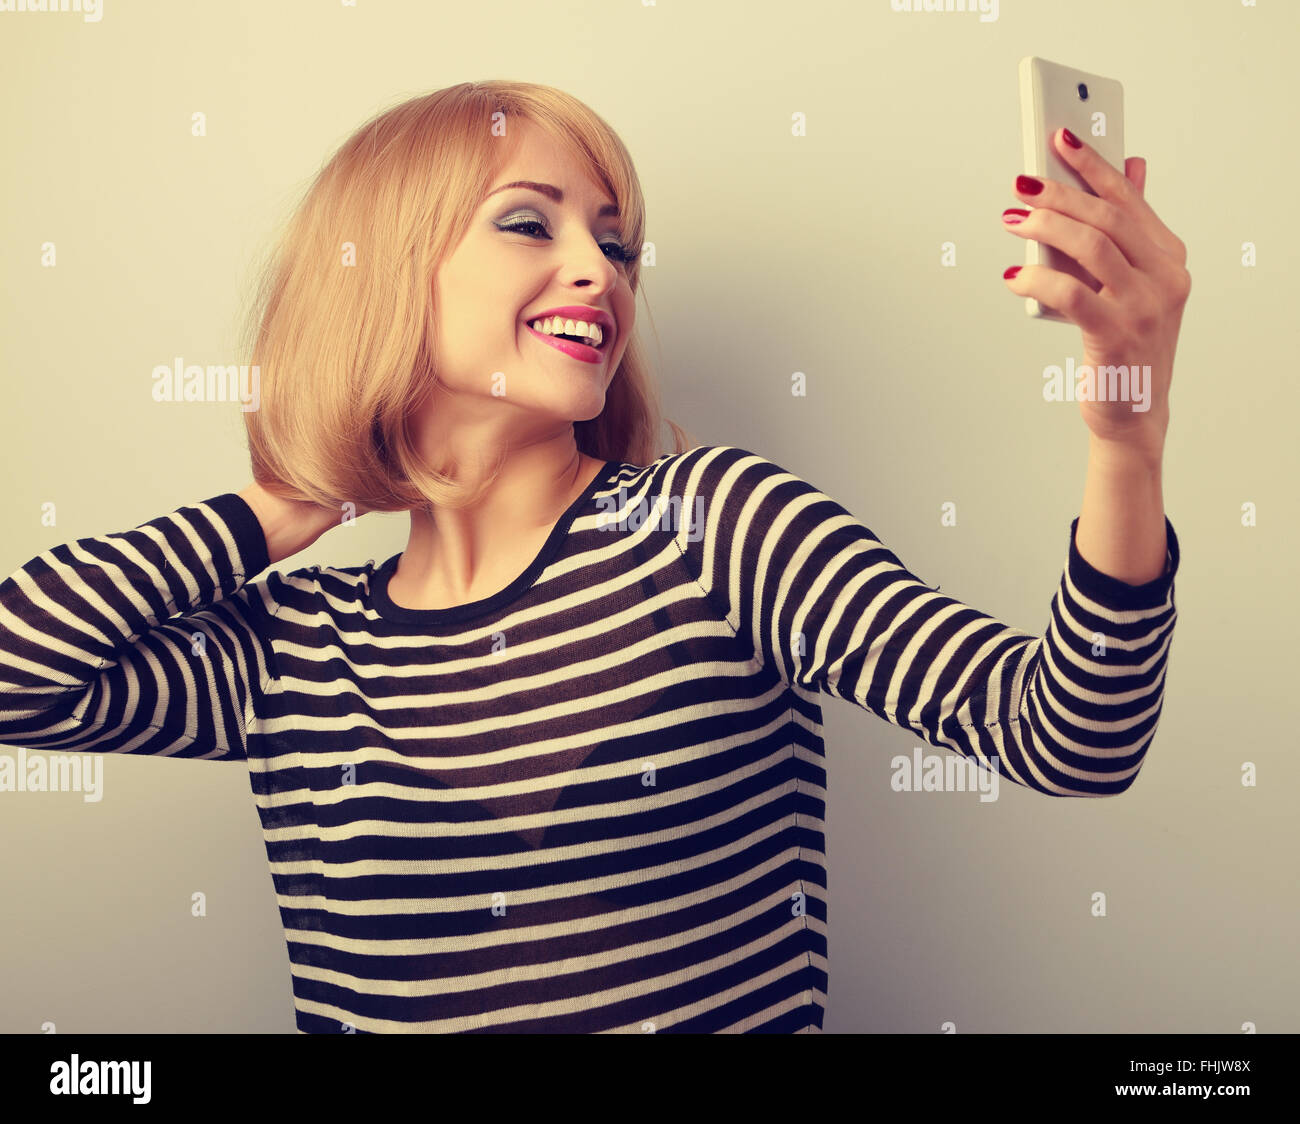 Funny cute blond woman making self photo of herself haircut and make-up on mobile phone. Toned closeup portrait Stock Photo